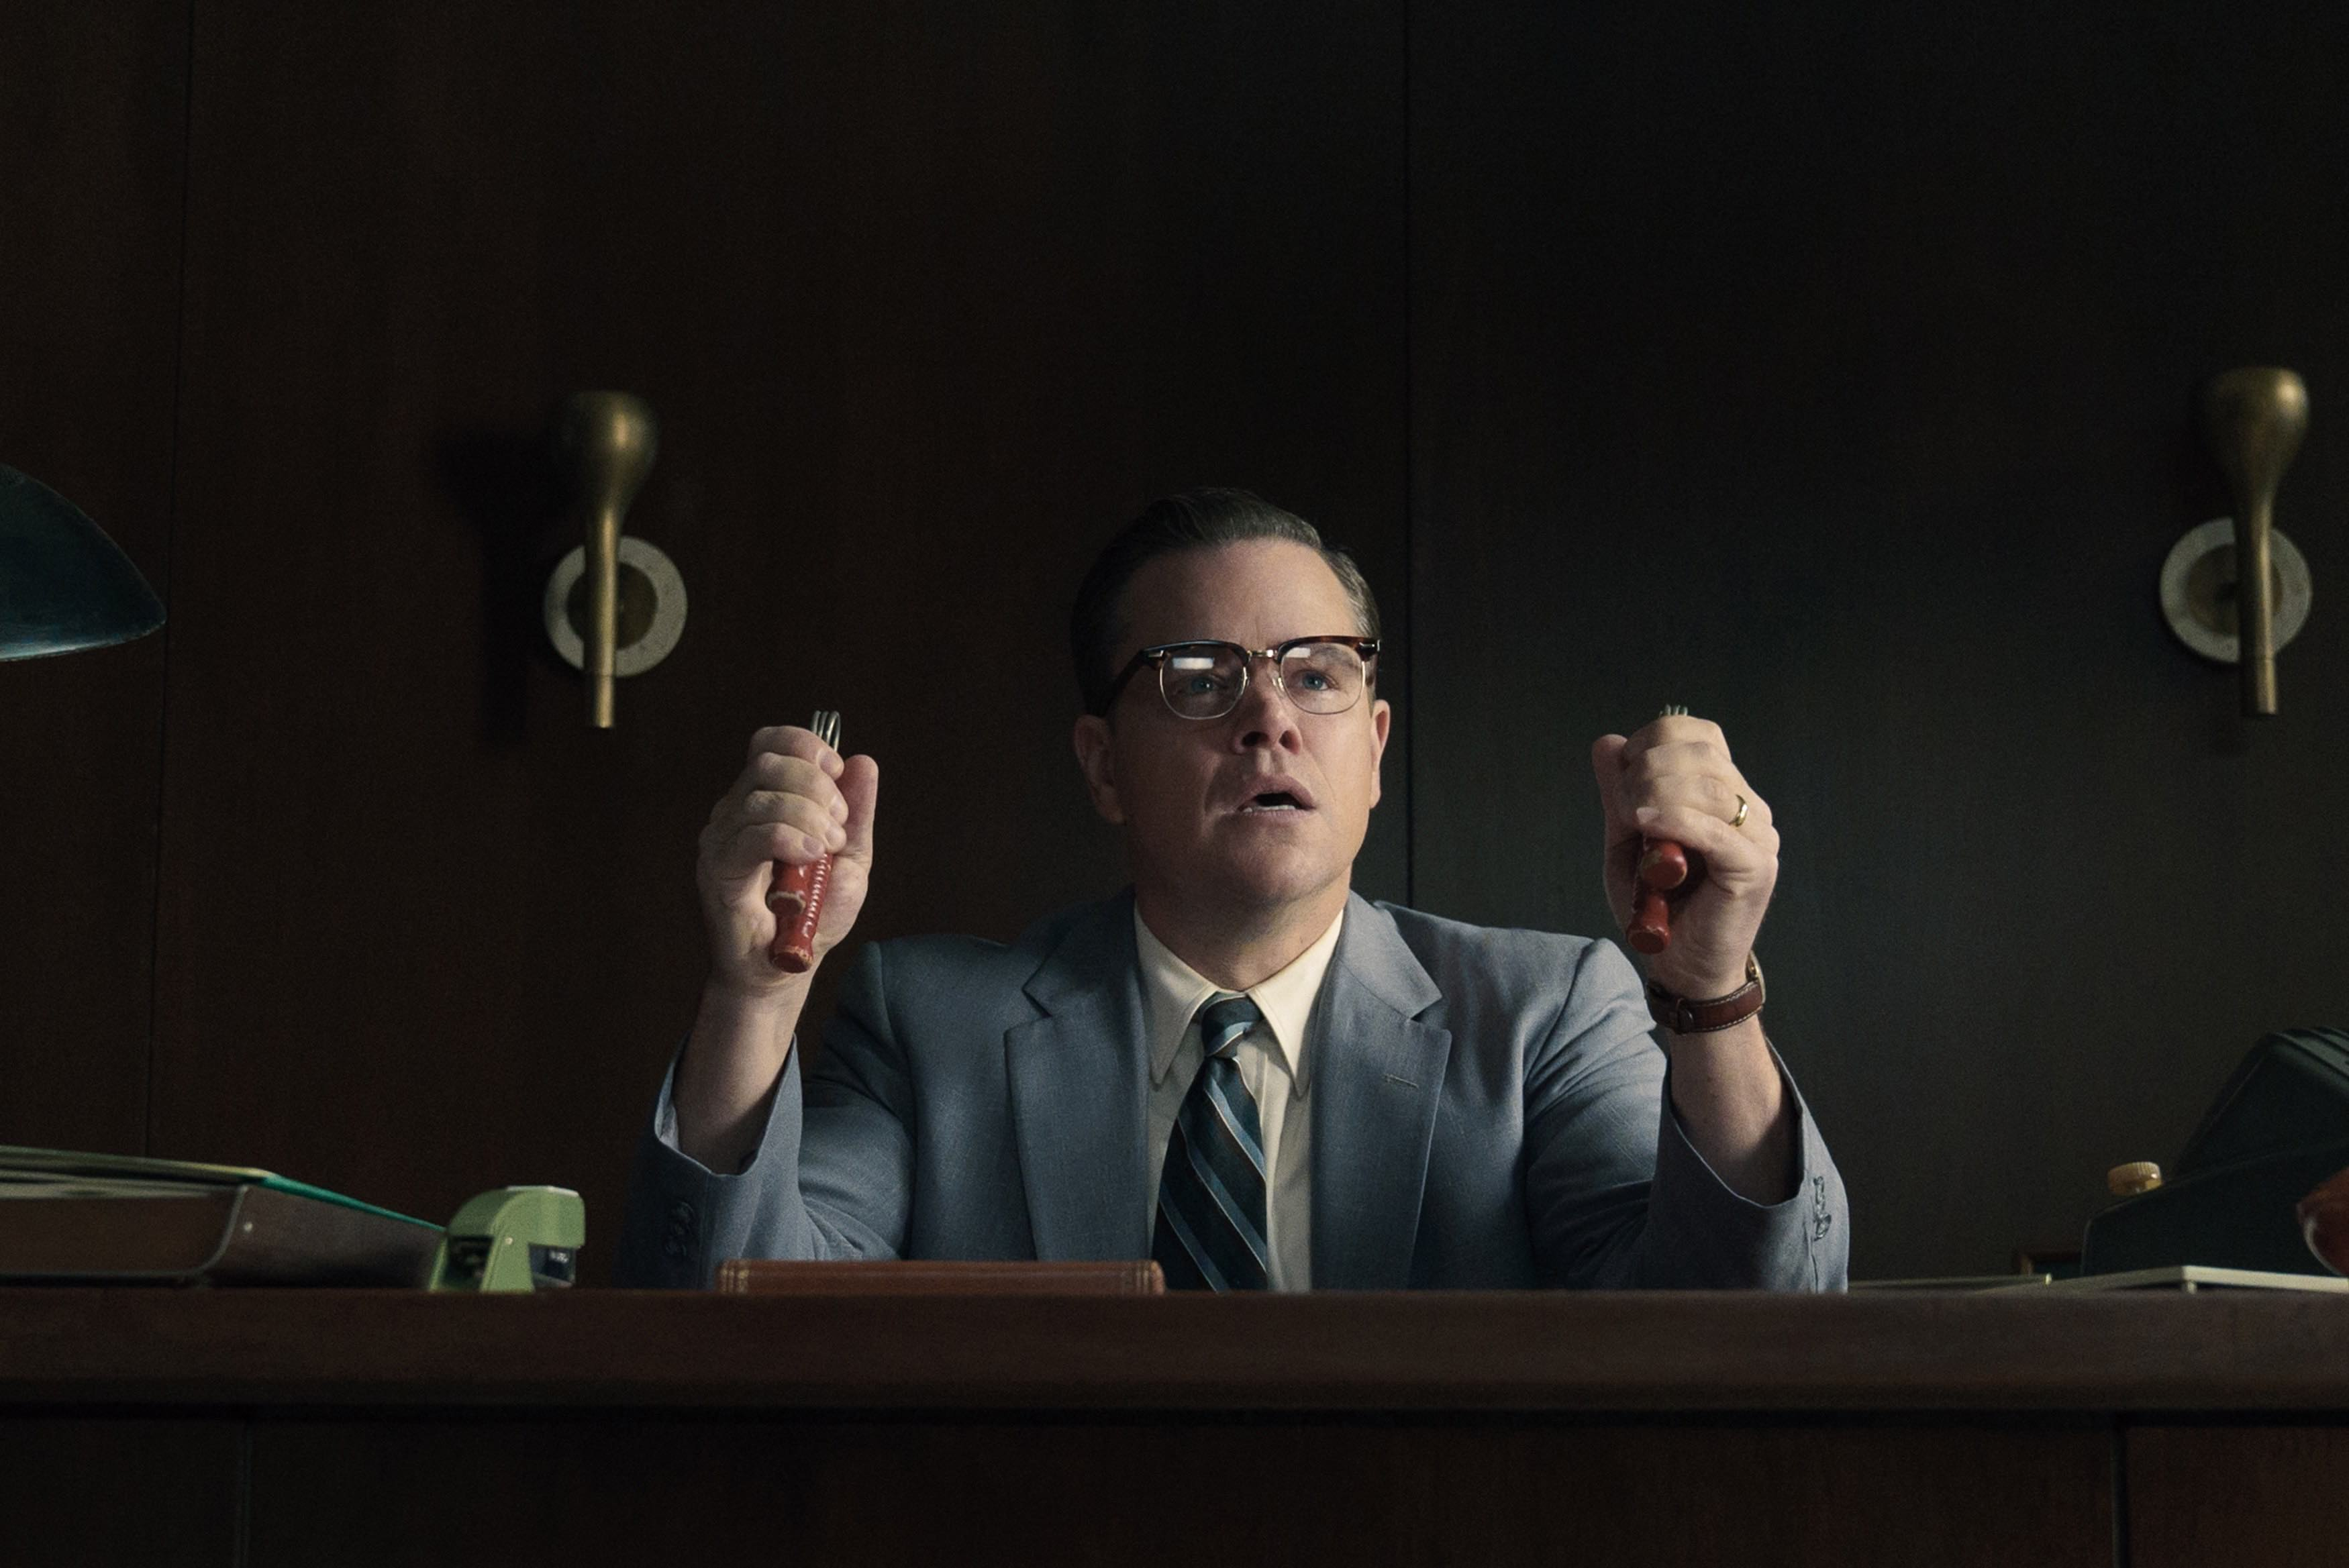 Matt Damon as Gardner in SUBURBICON, from Paramount Pictures and Black Bear Pictures.